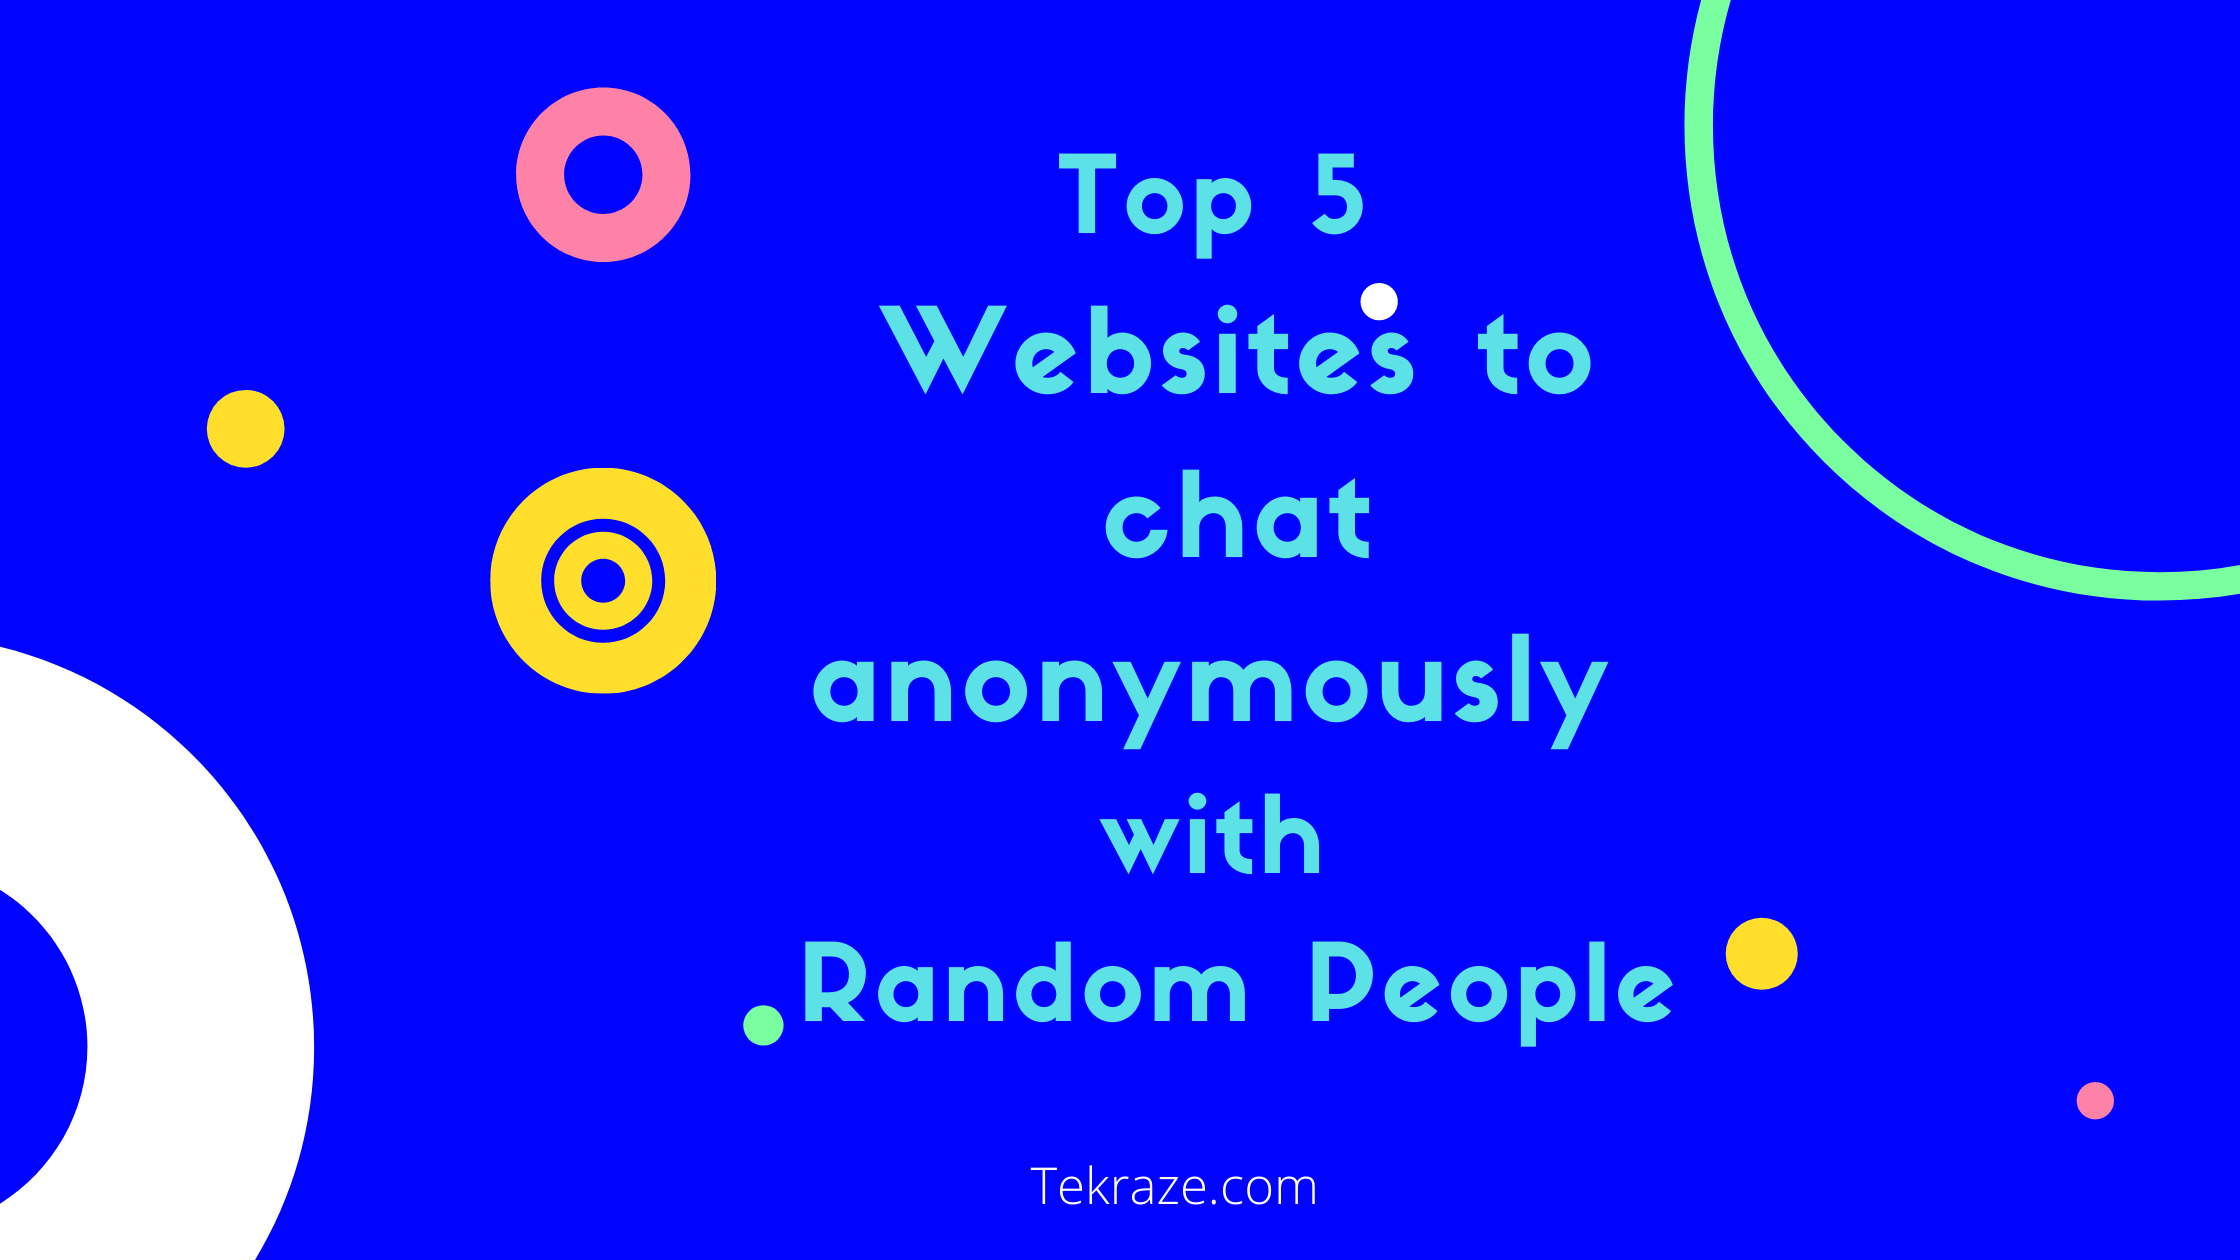 Top 5 Websites to chat anonymously with Random People 1 - Top 5 Websites to chat anonymously with Random People (1)